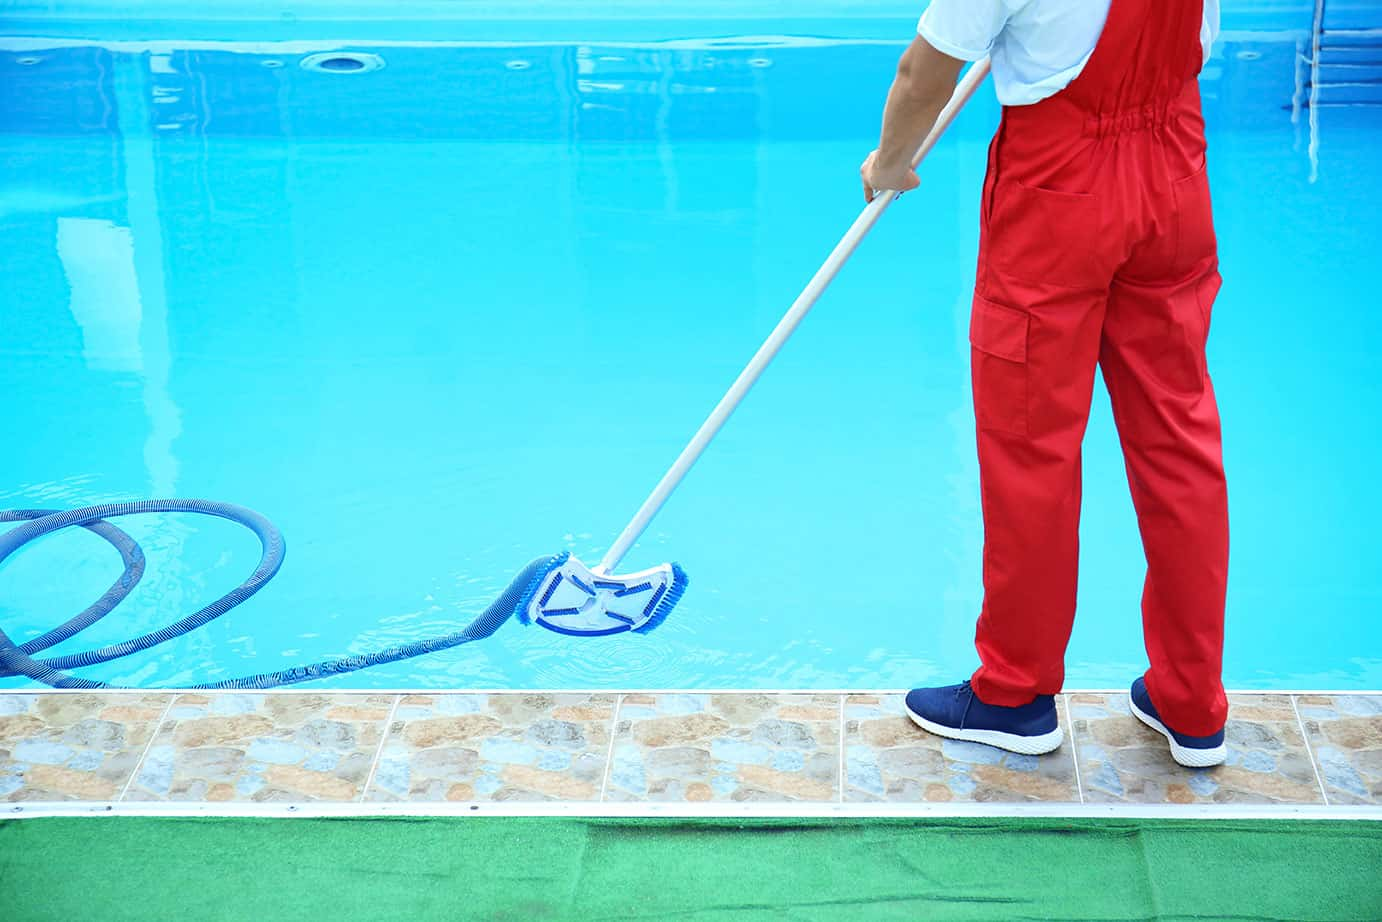 How To Start A Pool Cleaning Business in 2019 - Broadly.com